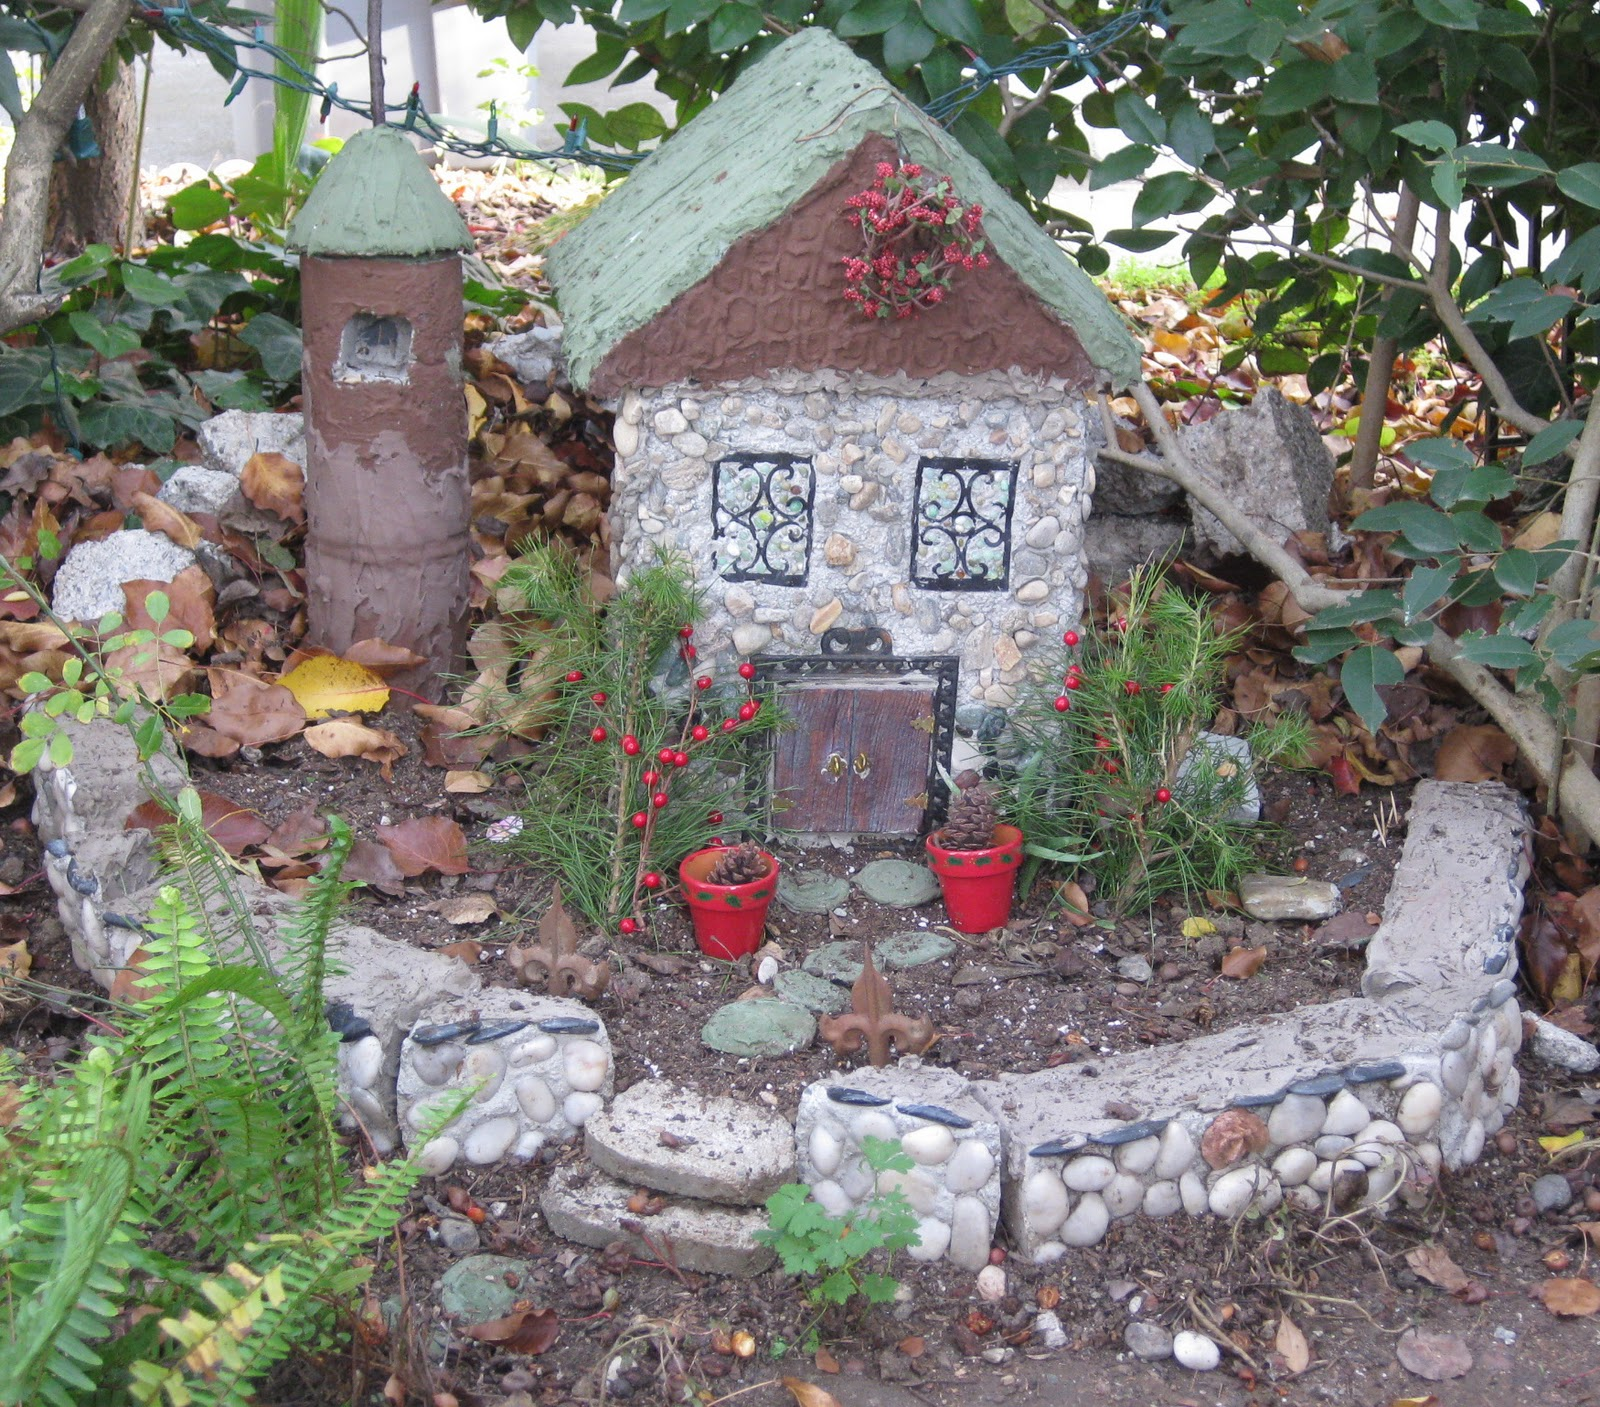 Growing A Garden In Davis: The Fairy House Opens for Guests